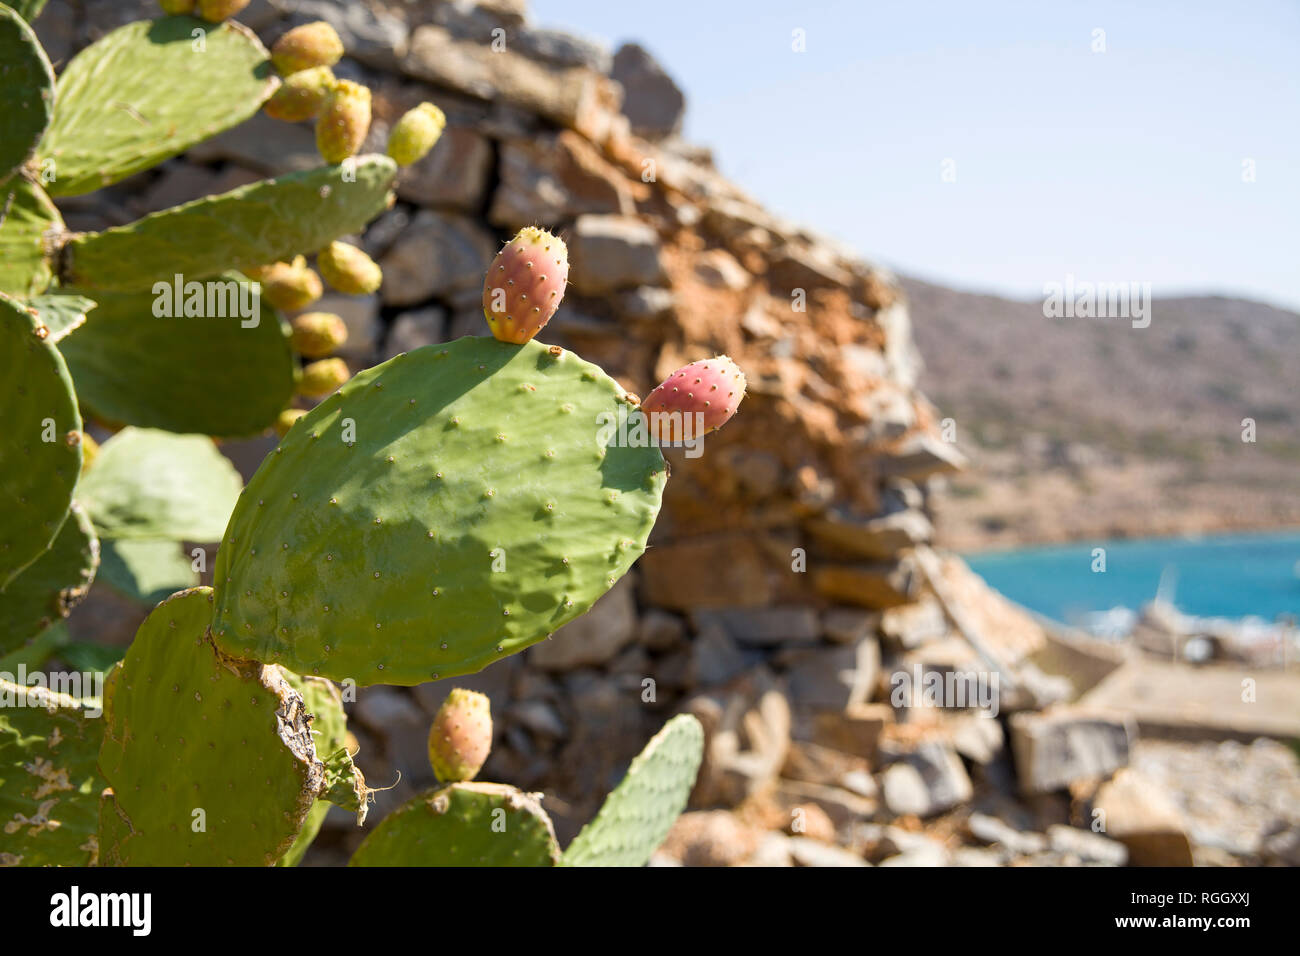 Edible cactus fruits. Opuntia edible, indian fig plant with spines and edible fruits. - Stock Image